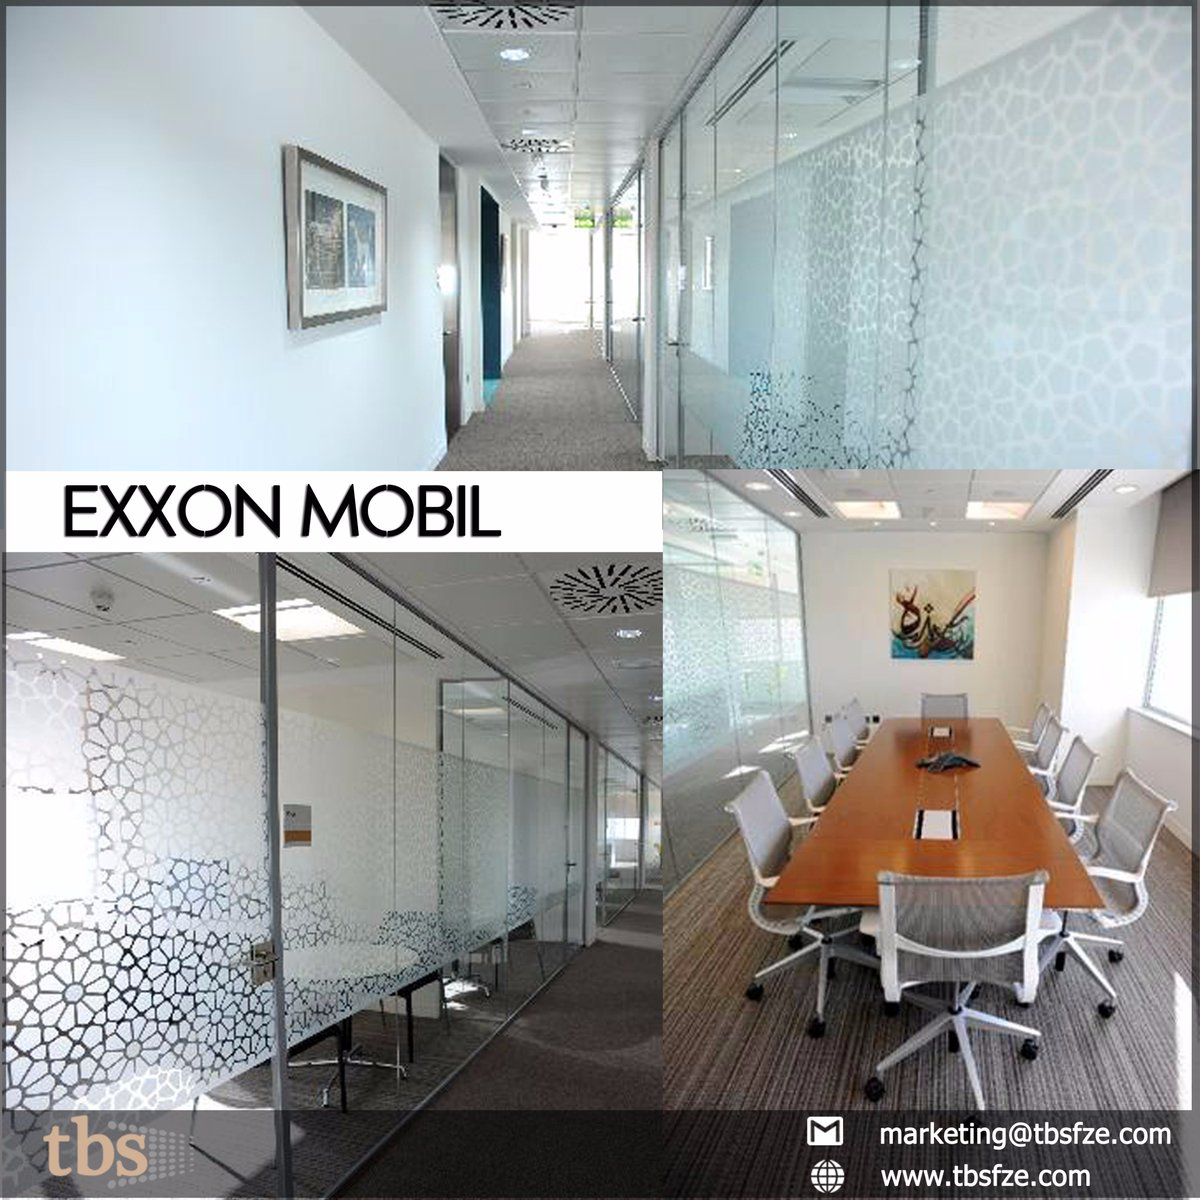 Check out the #interior #FitOut work including #glasspartition, #signage for #ExxonMobil office in #Dubai by #TBS  marketing@tbsfze.com Visit us on  http://www. tbsfze.com  &nbsp;   #FitOut #artwork #graphics #meetingrooms #corridors #InteriorDesign #Interiors #Design #UAE<br>http://pic.twitter.com/dCExj0Mt4e